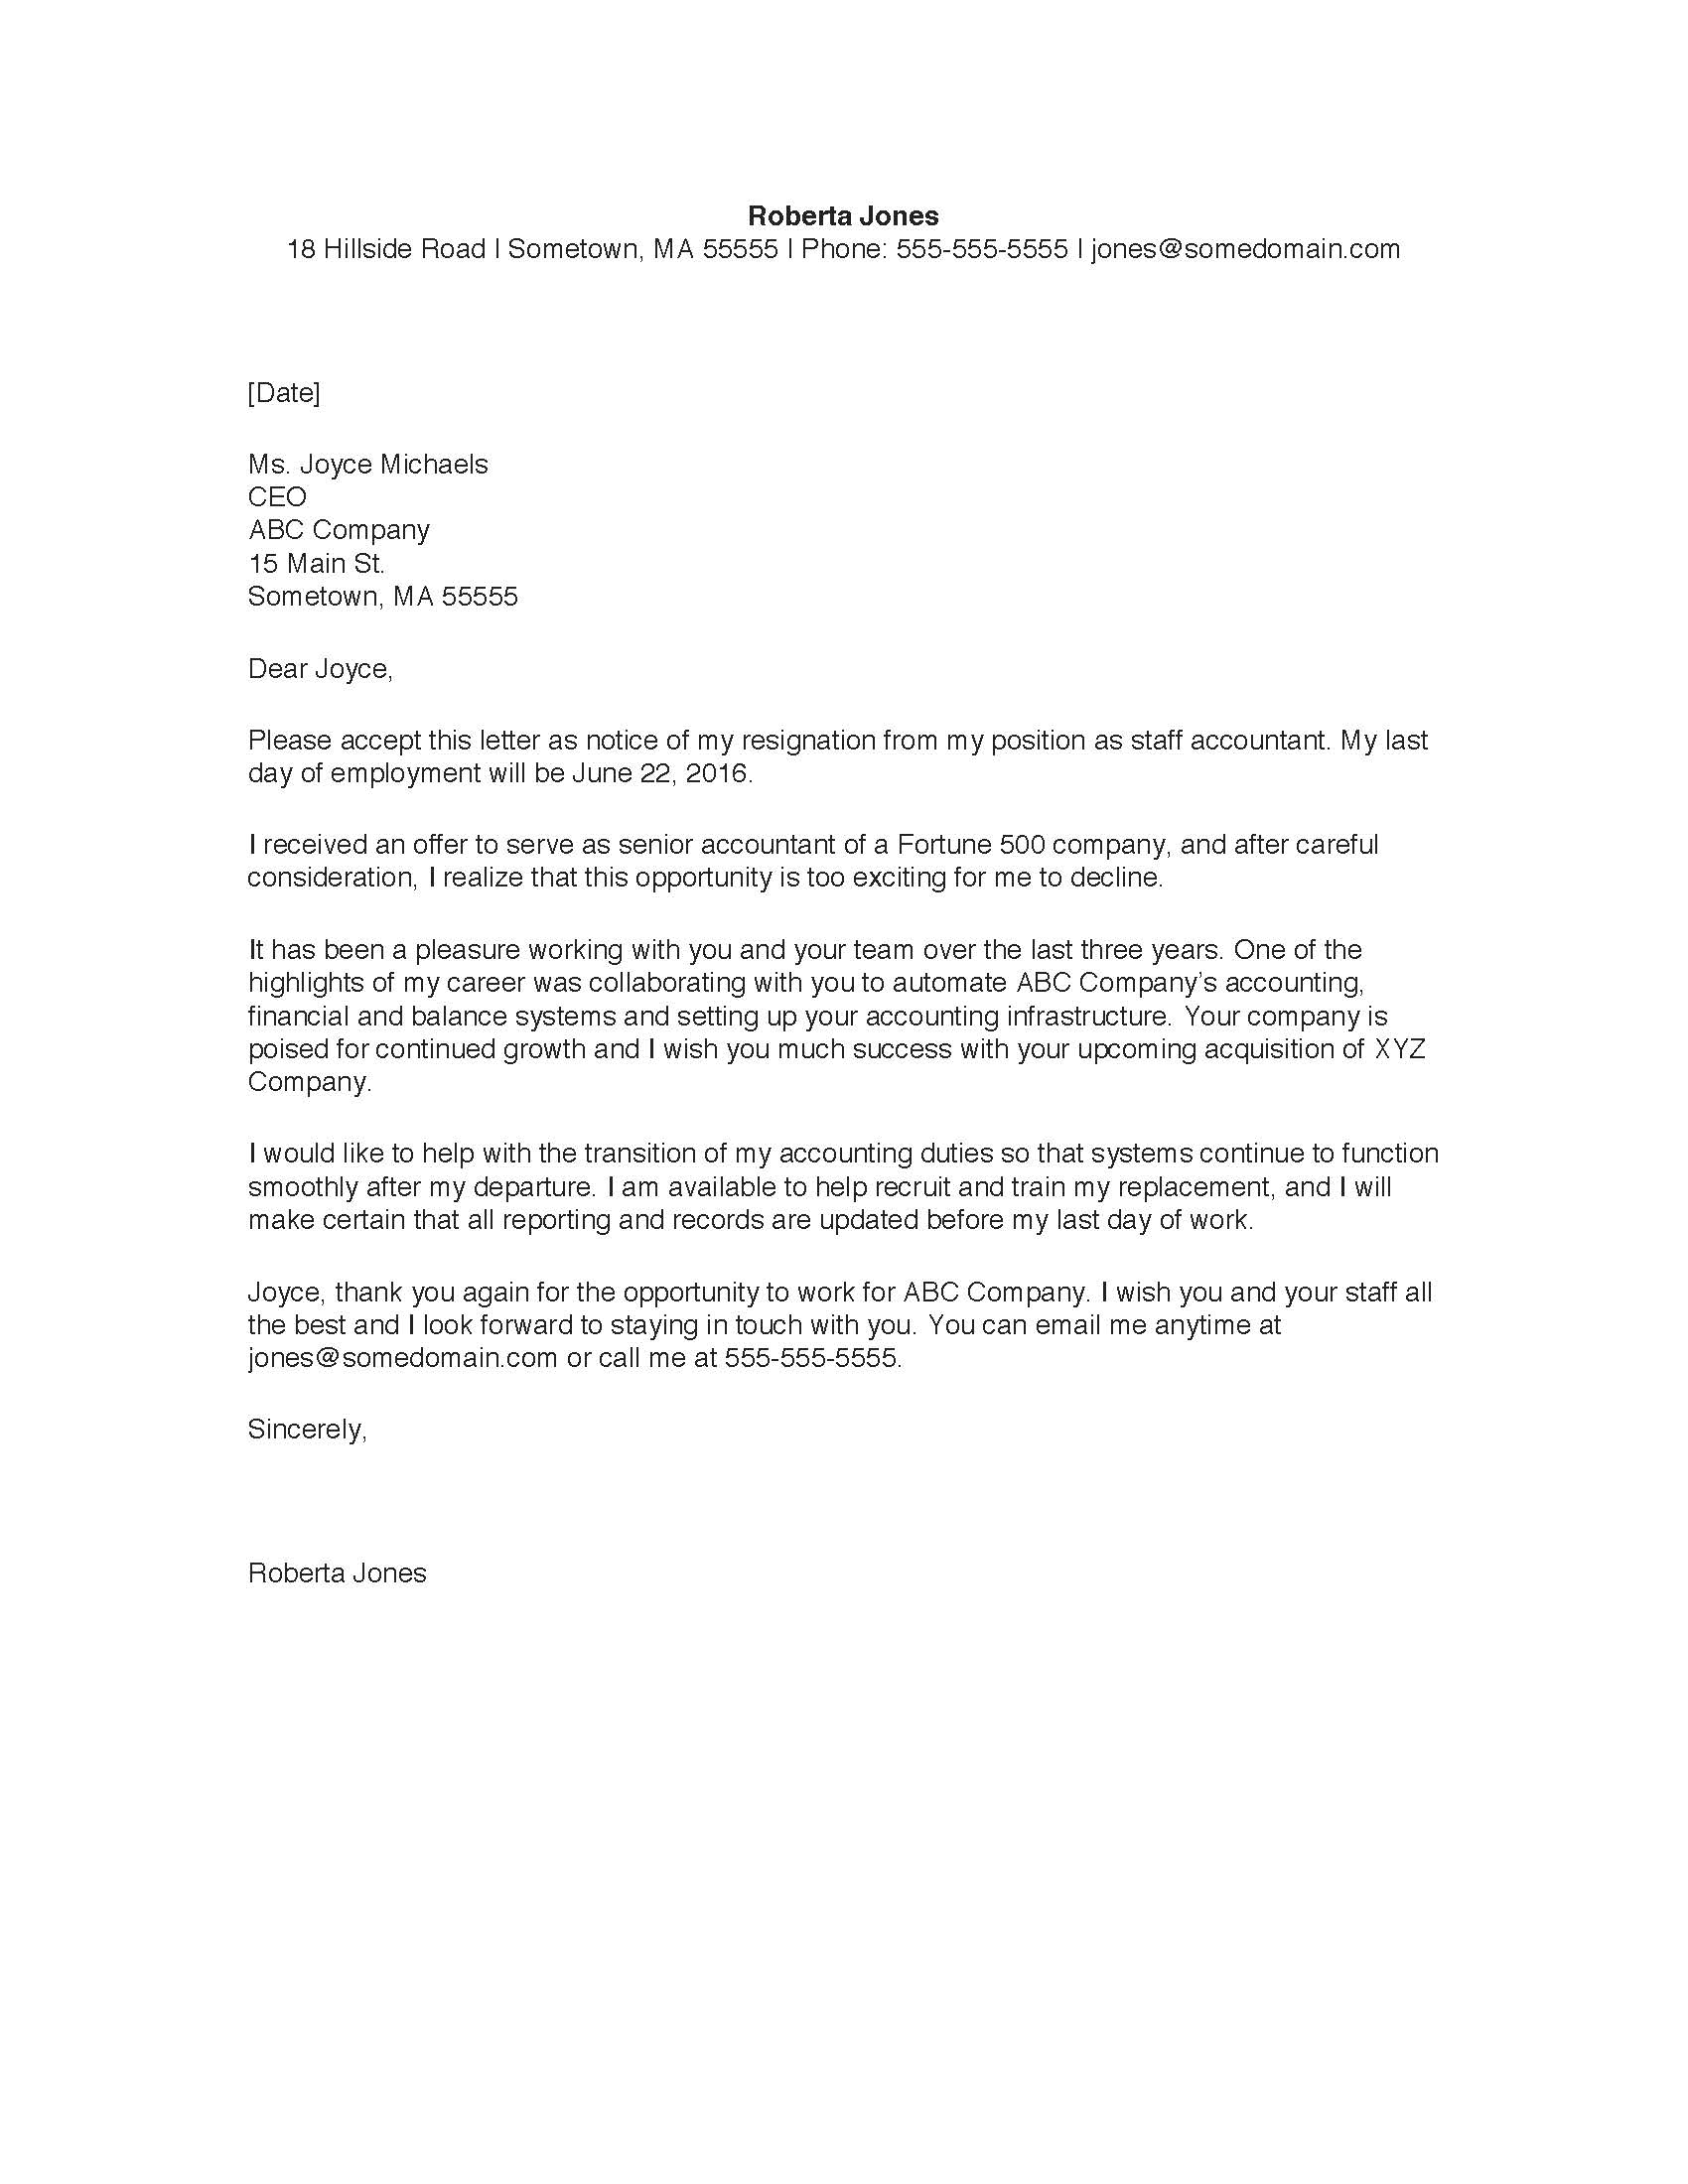 Formal Two Week Notice Letter from coda.newjobs.com